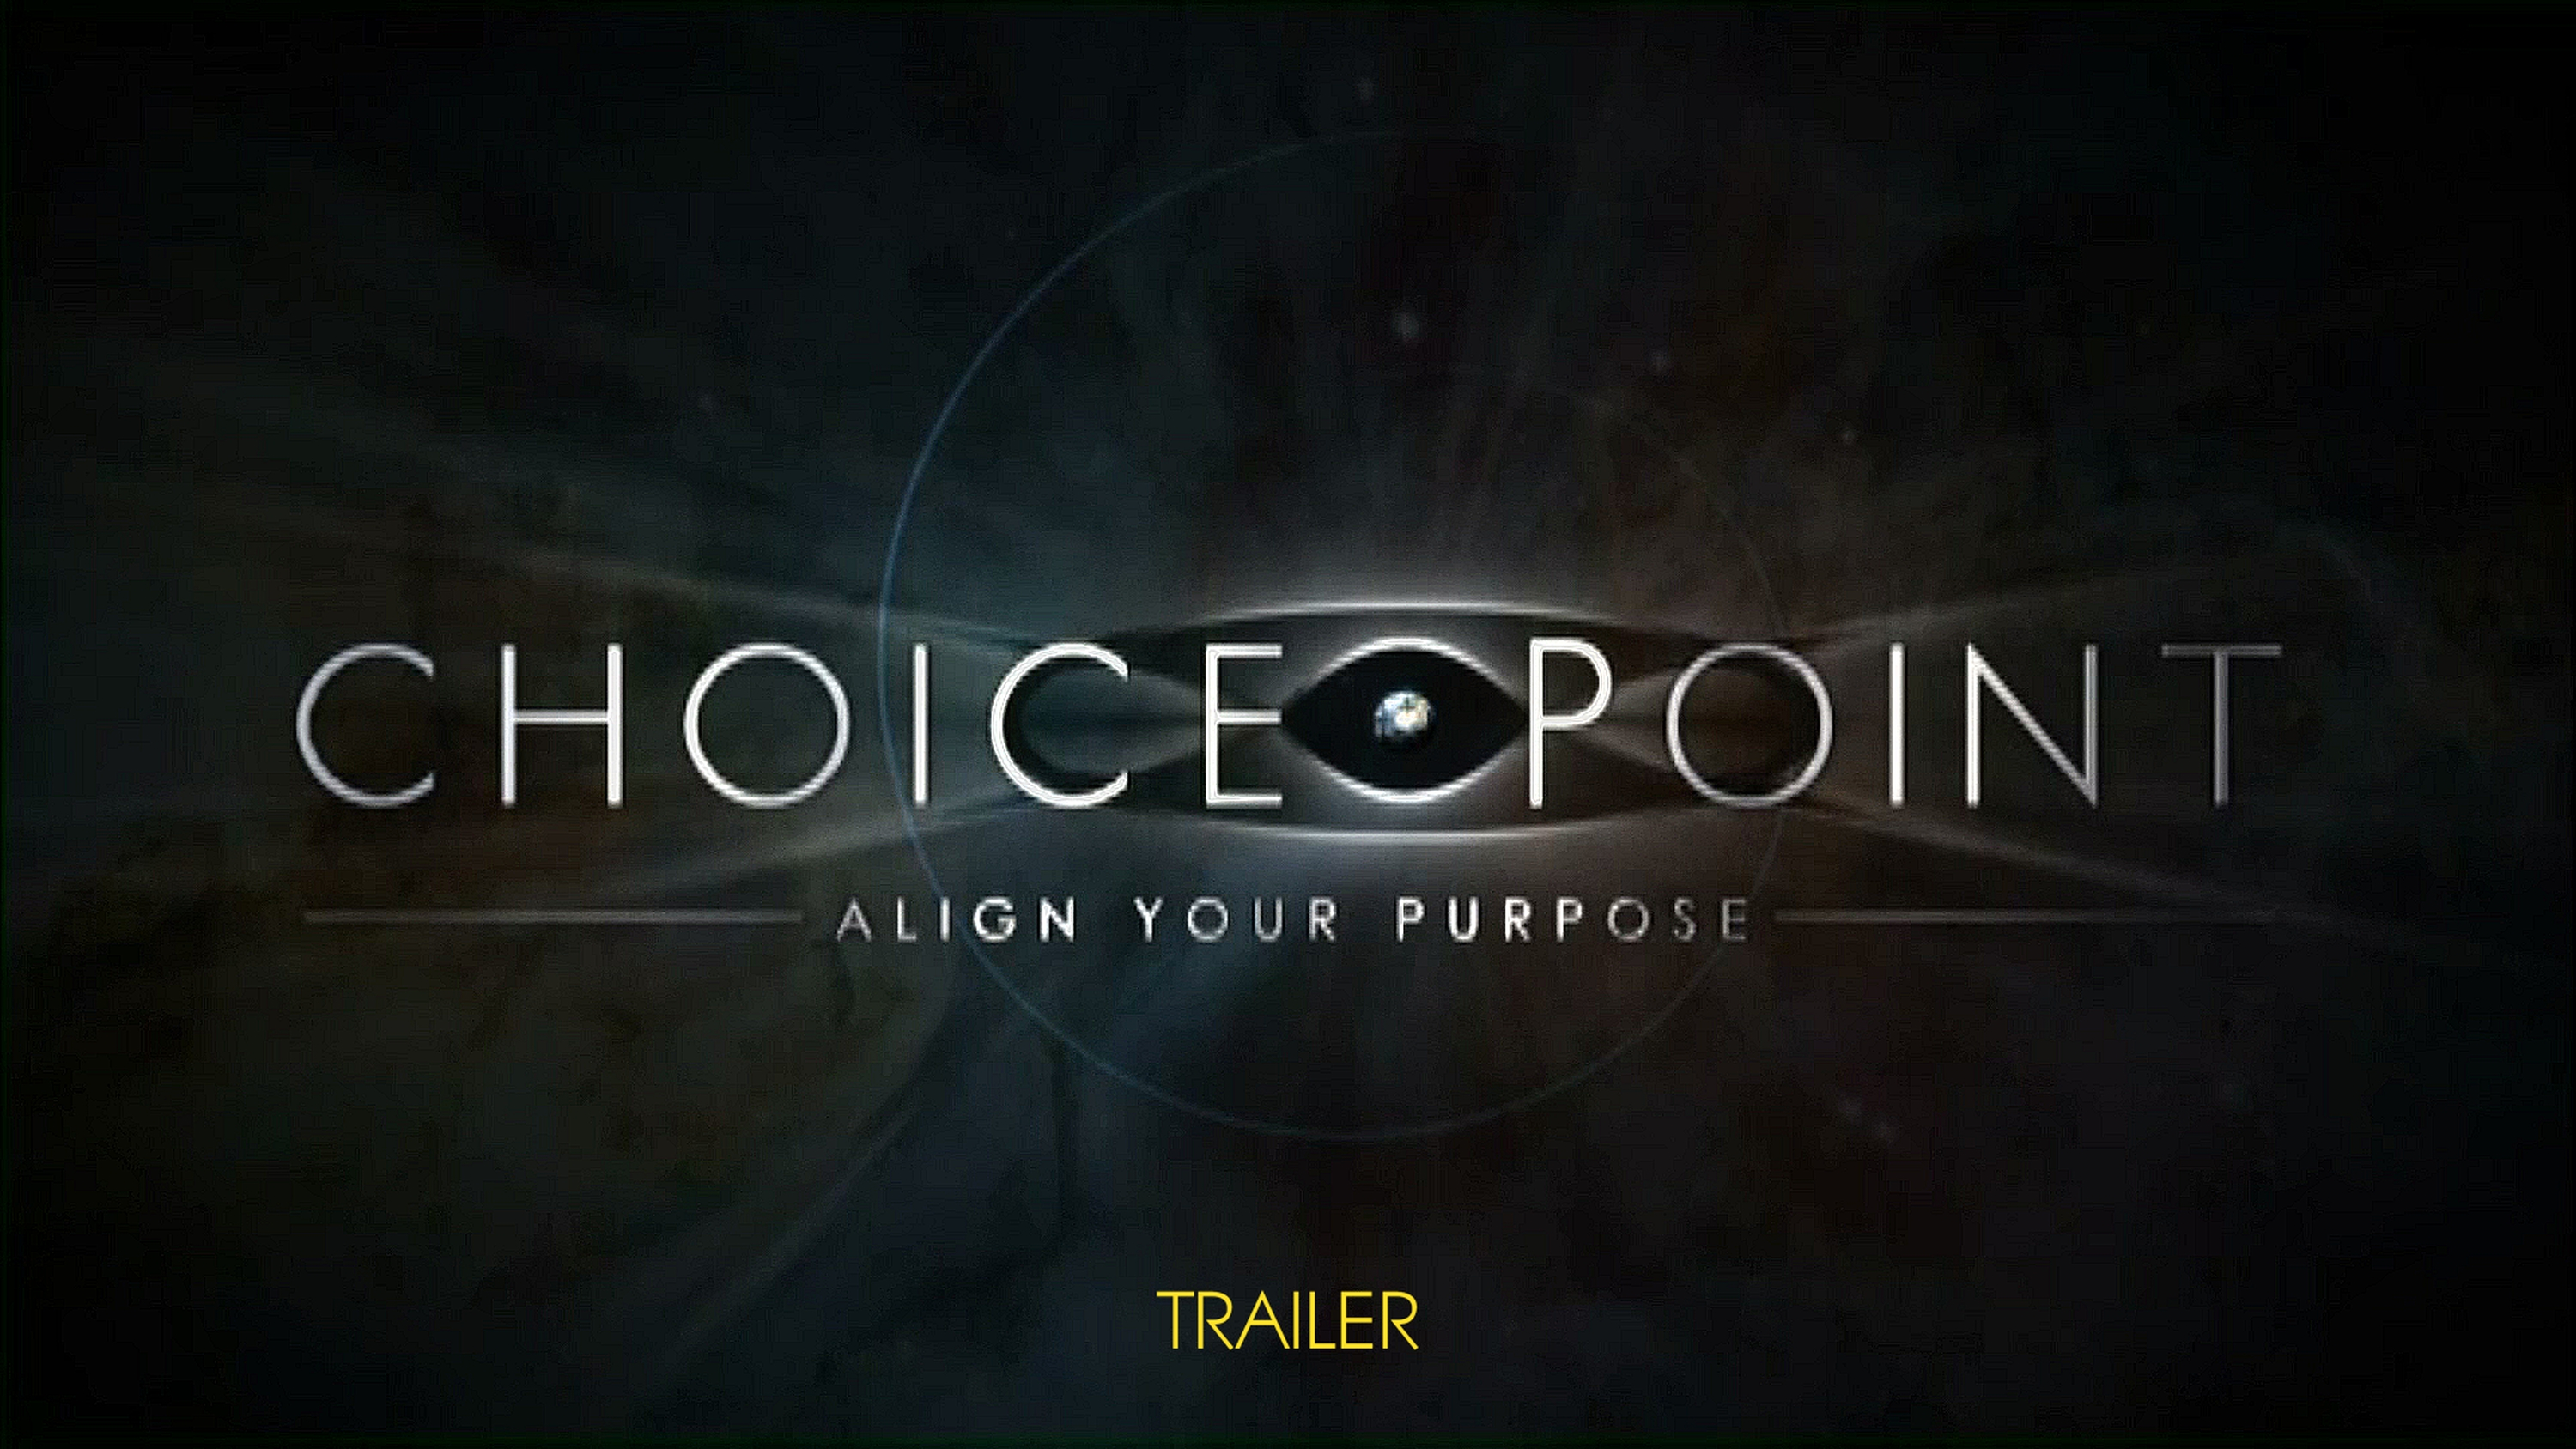 Choice Point movie trailer - world-class documentary on the secrets of transformational change featuring major visionaries and inspirational figures of our time.